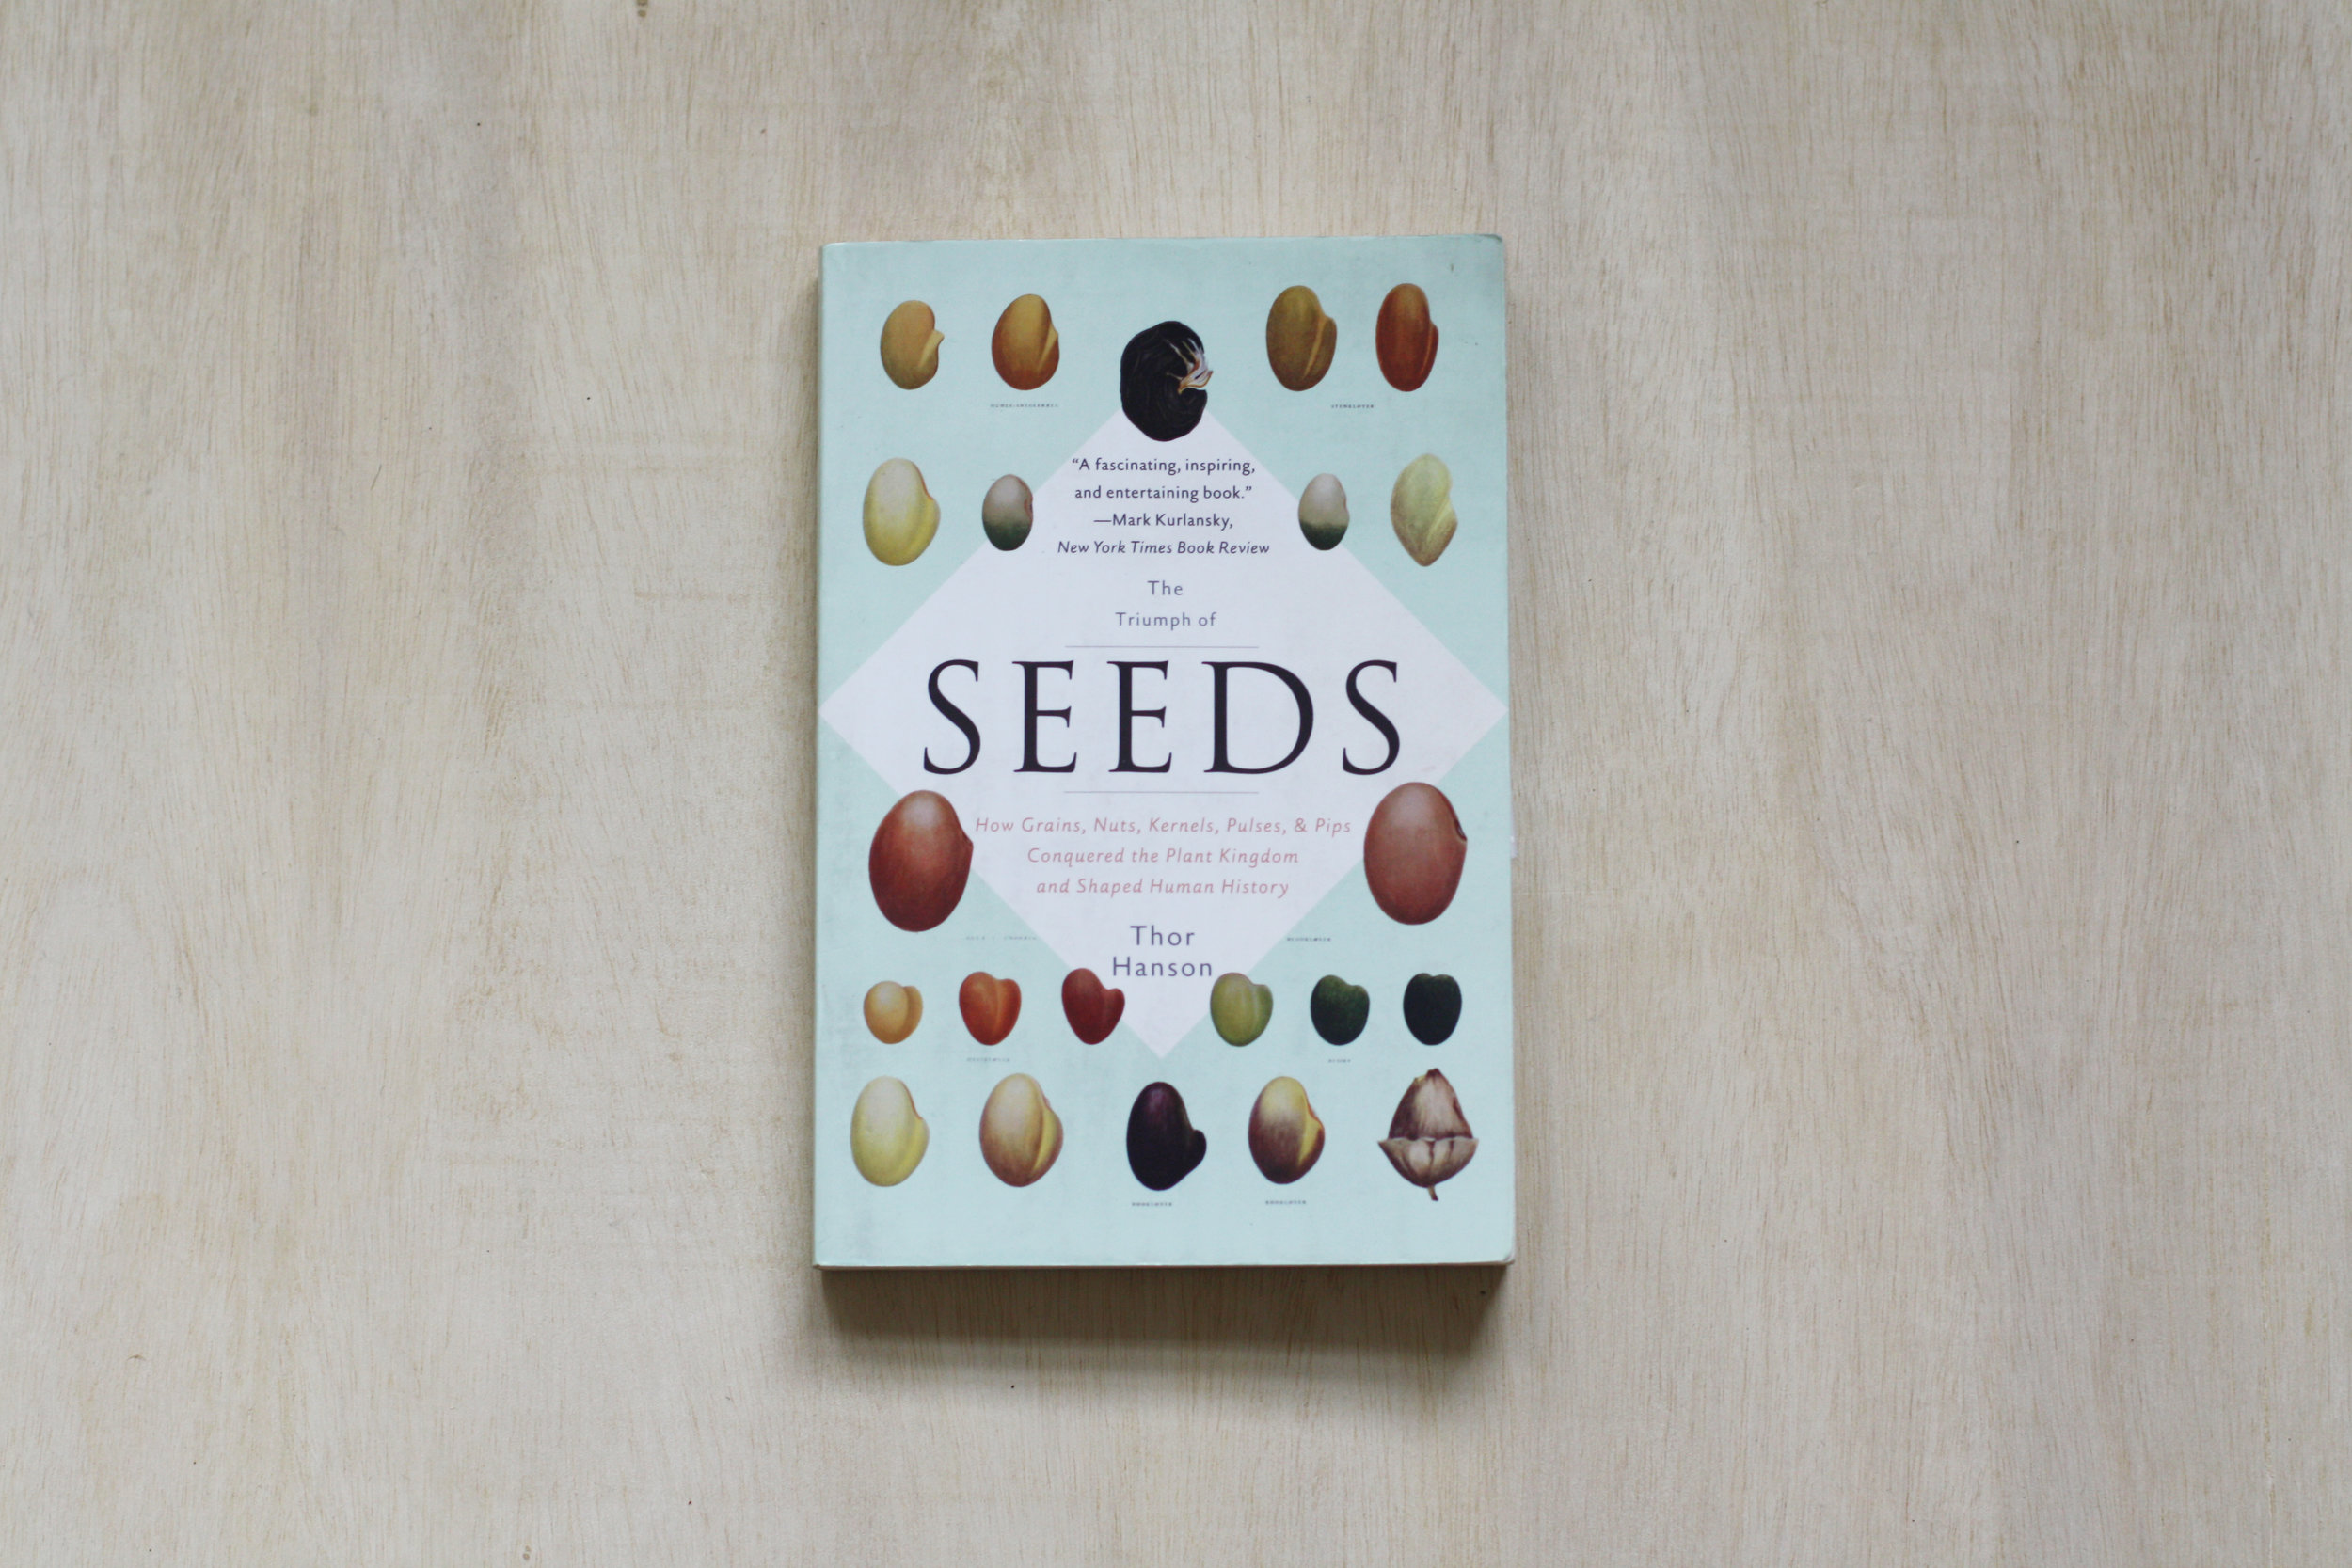 From the  Triumph of Seeds , Chapter 6: Methuselah addresses the extraordinary capacity of dormant seeds.